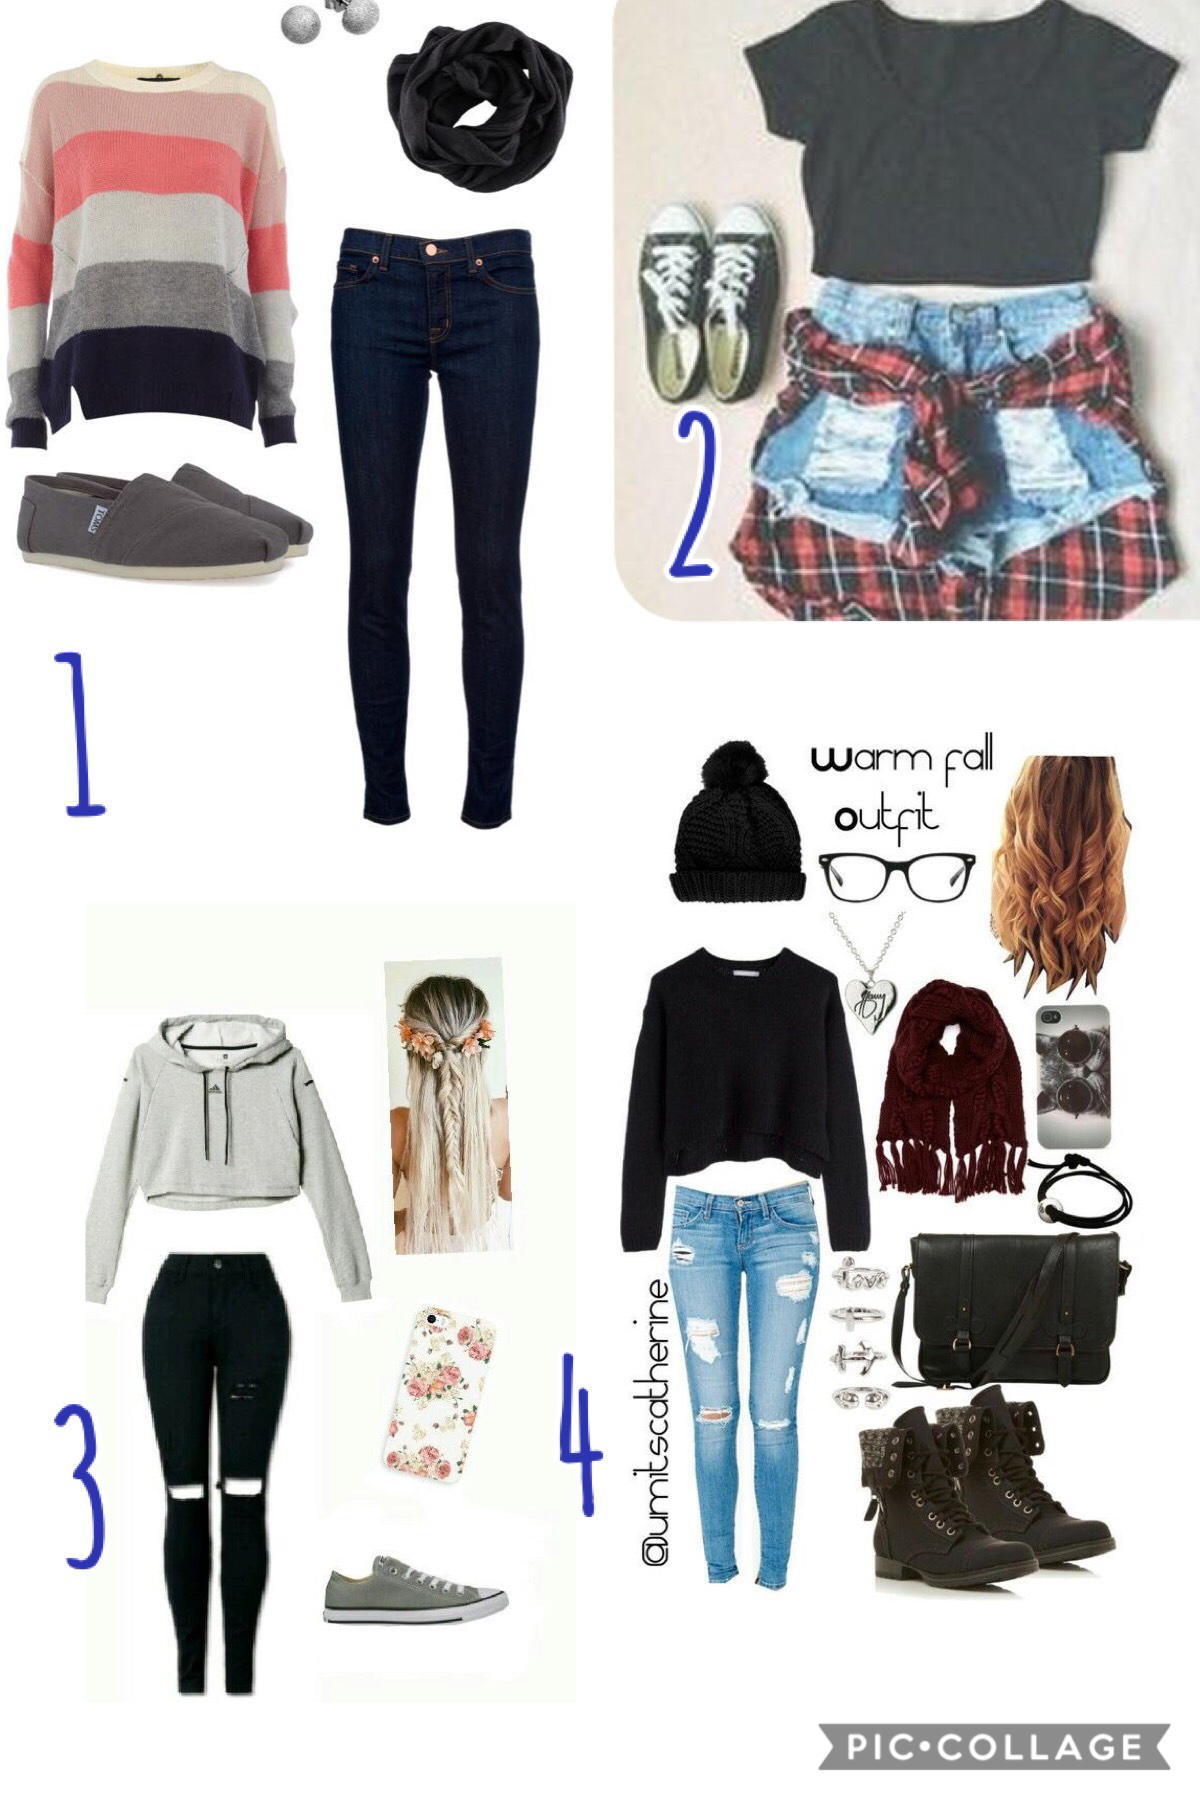 Honestly I would wear any of these but would you?